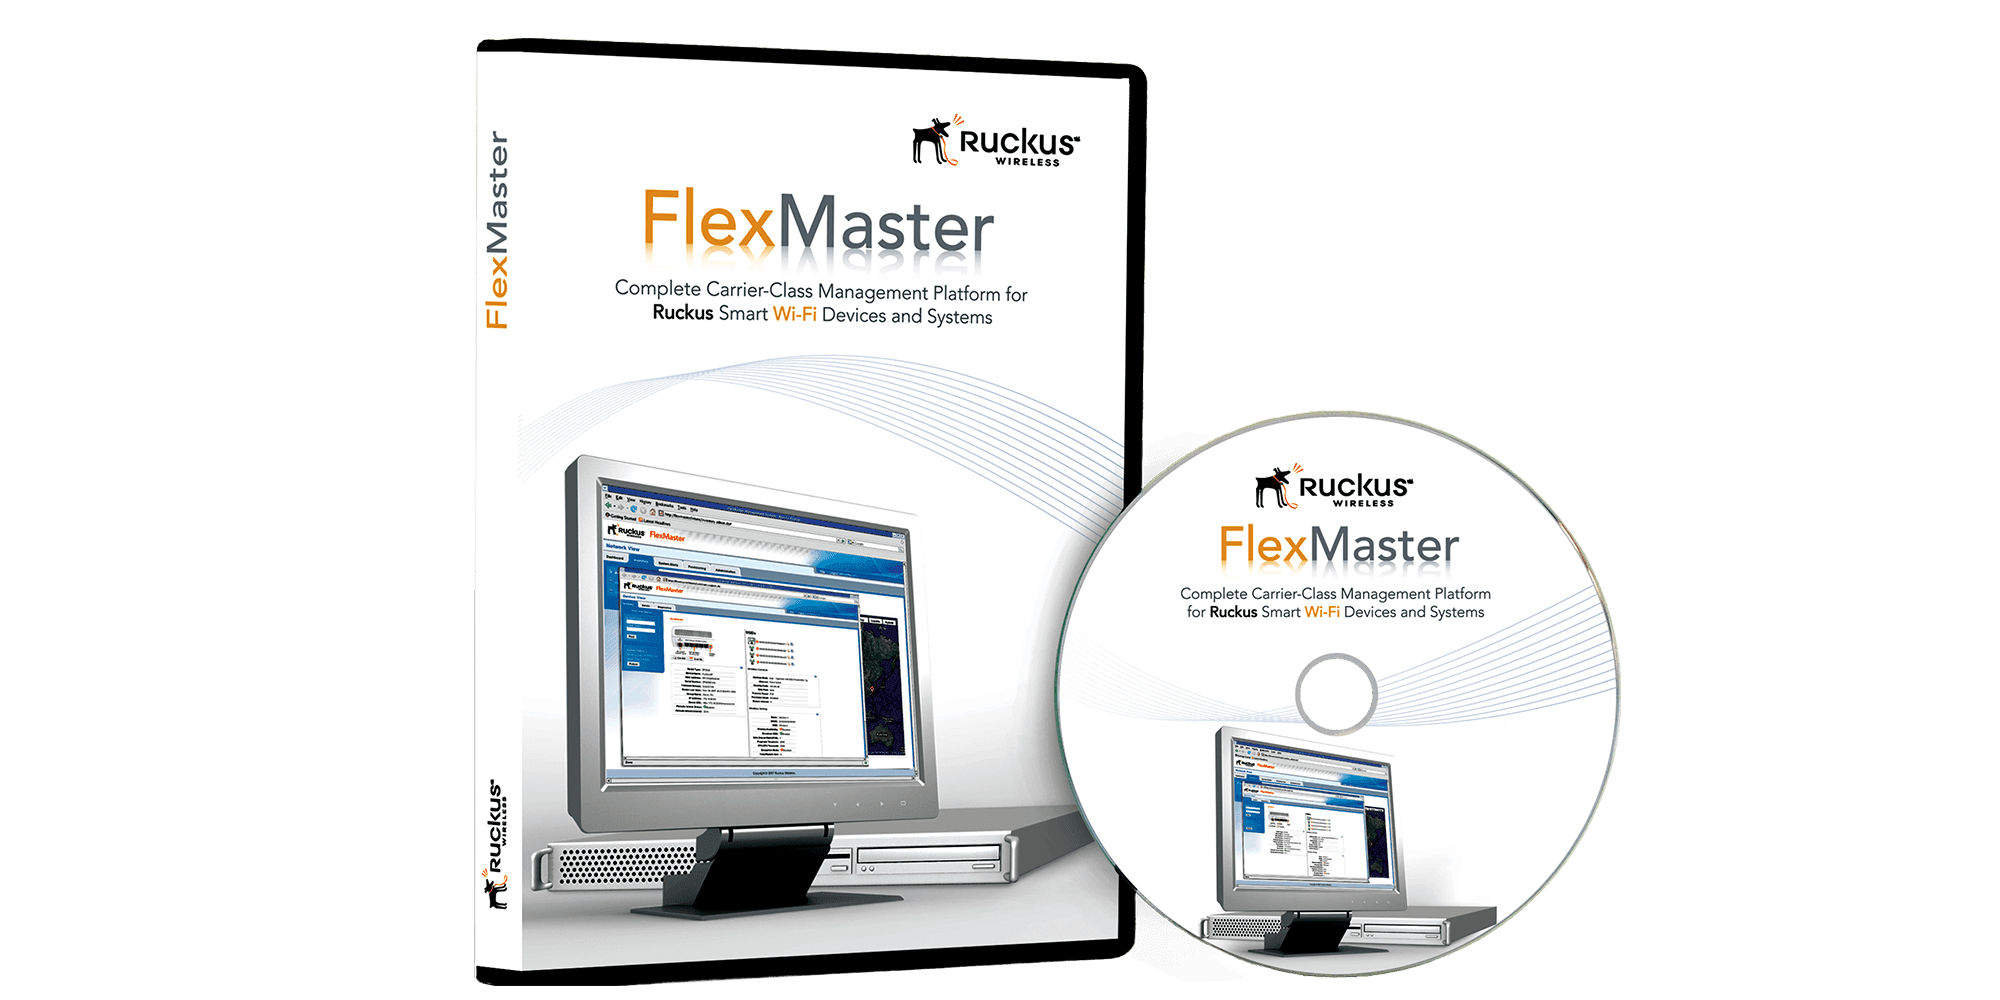 ... IP network — with FlexMaster. It's a complete management platform for  building and managing Enterprise and Carrier-Grade Wi-Fi Service  Infrastructures.